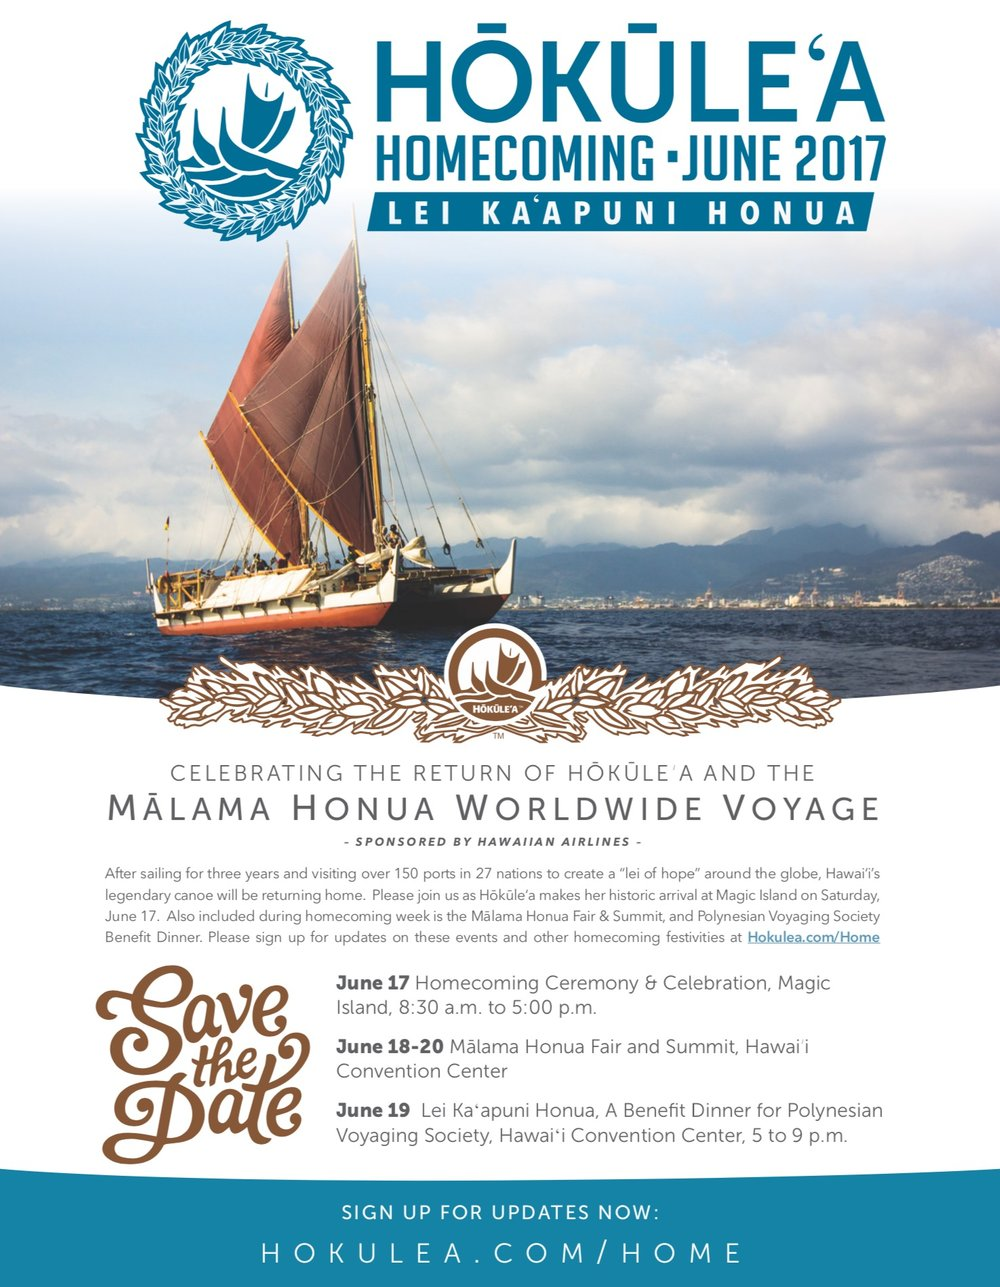 hokulea homecomming (2).jpg